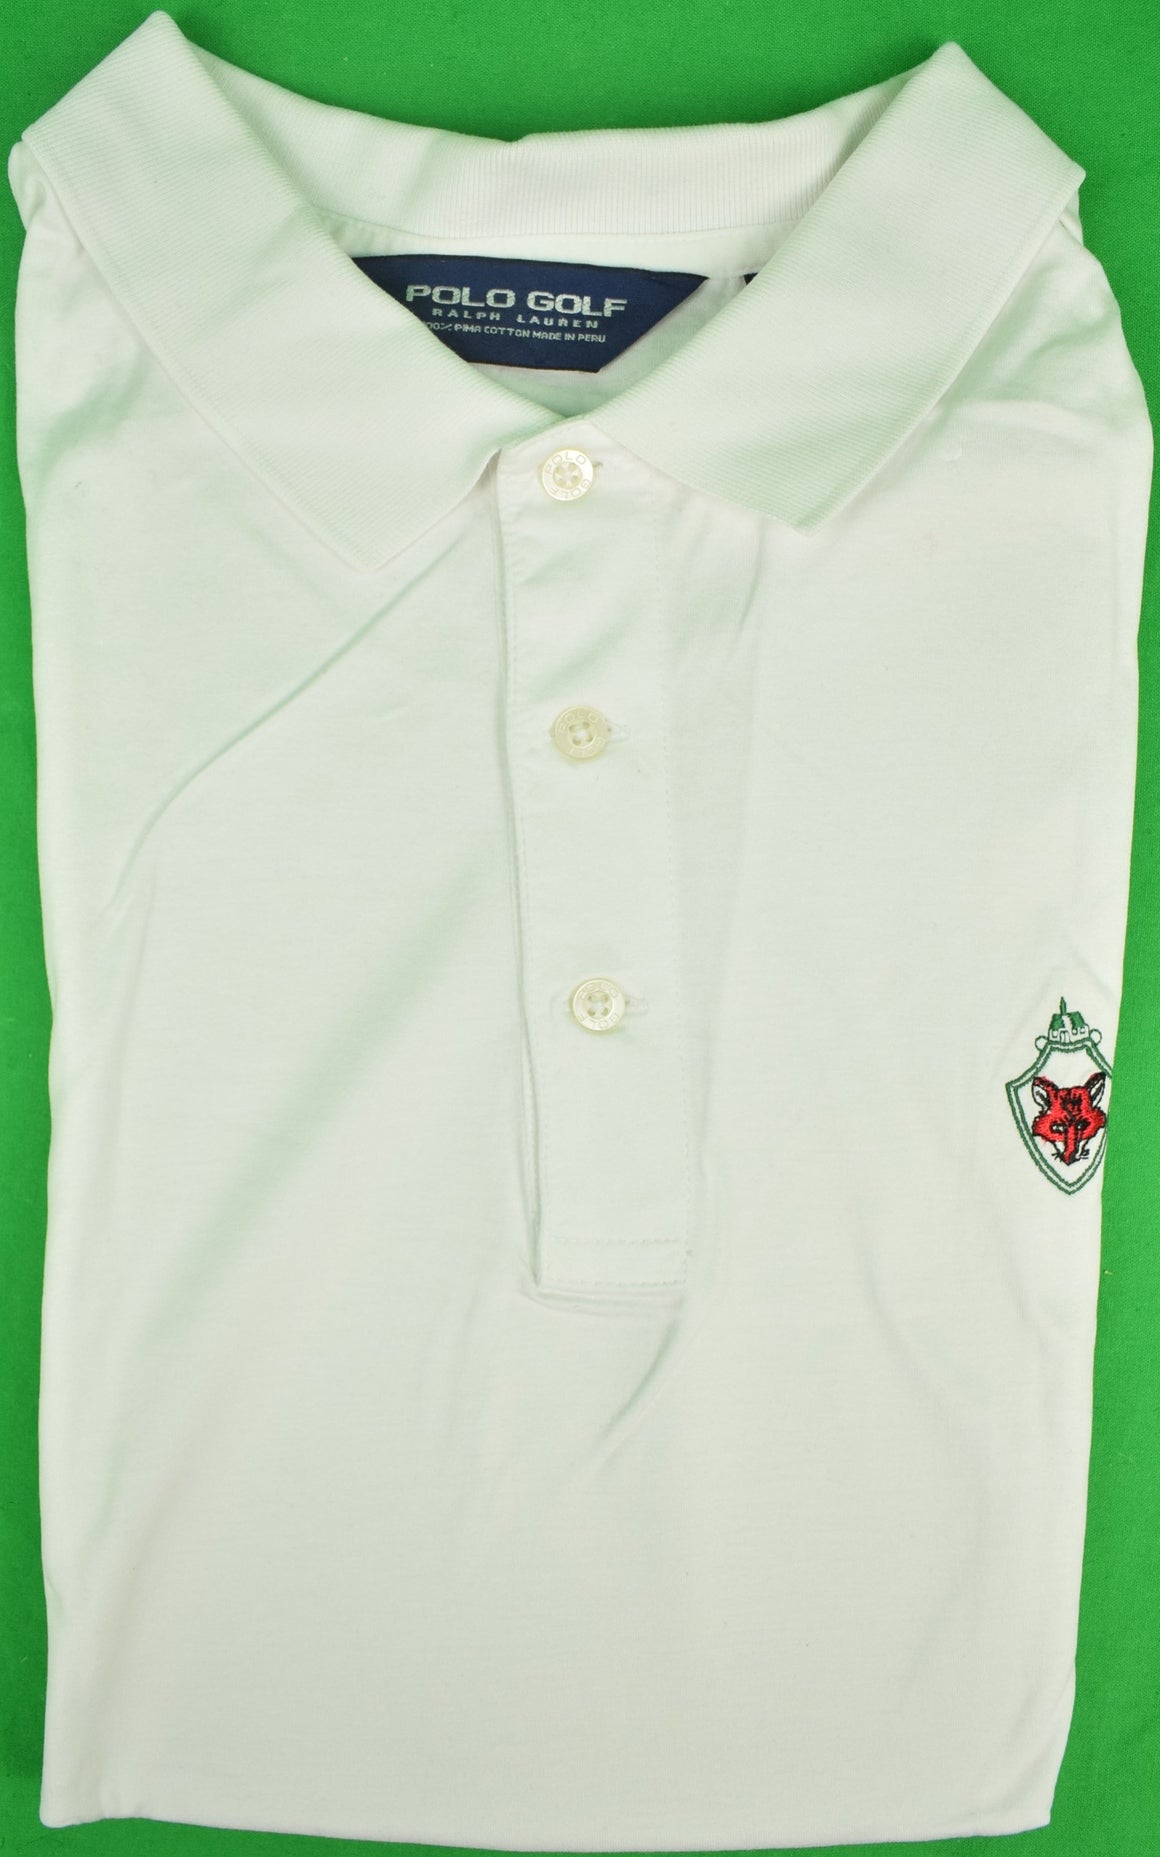 Ralph Lauren Polo White Golf Shirt w/ Fox Chapel Club Logo Sz: XXL